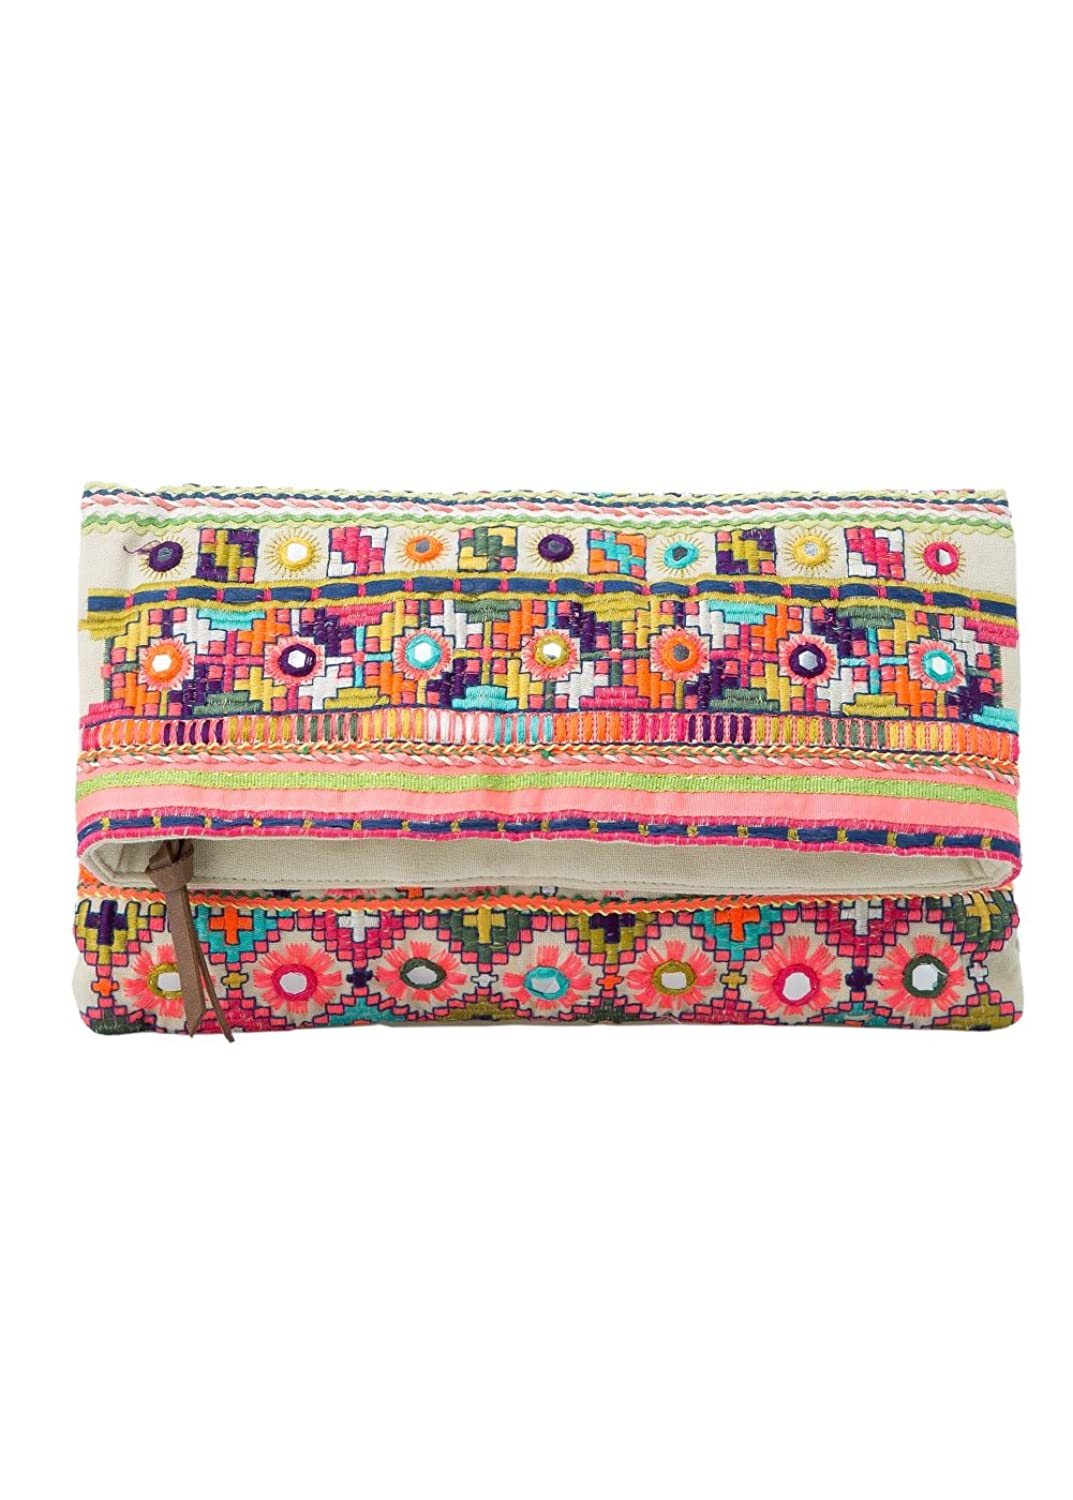 Mango Women's Ethnic Embroidery Clutch